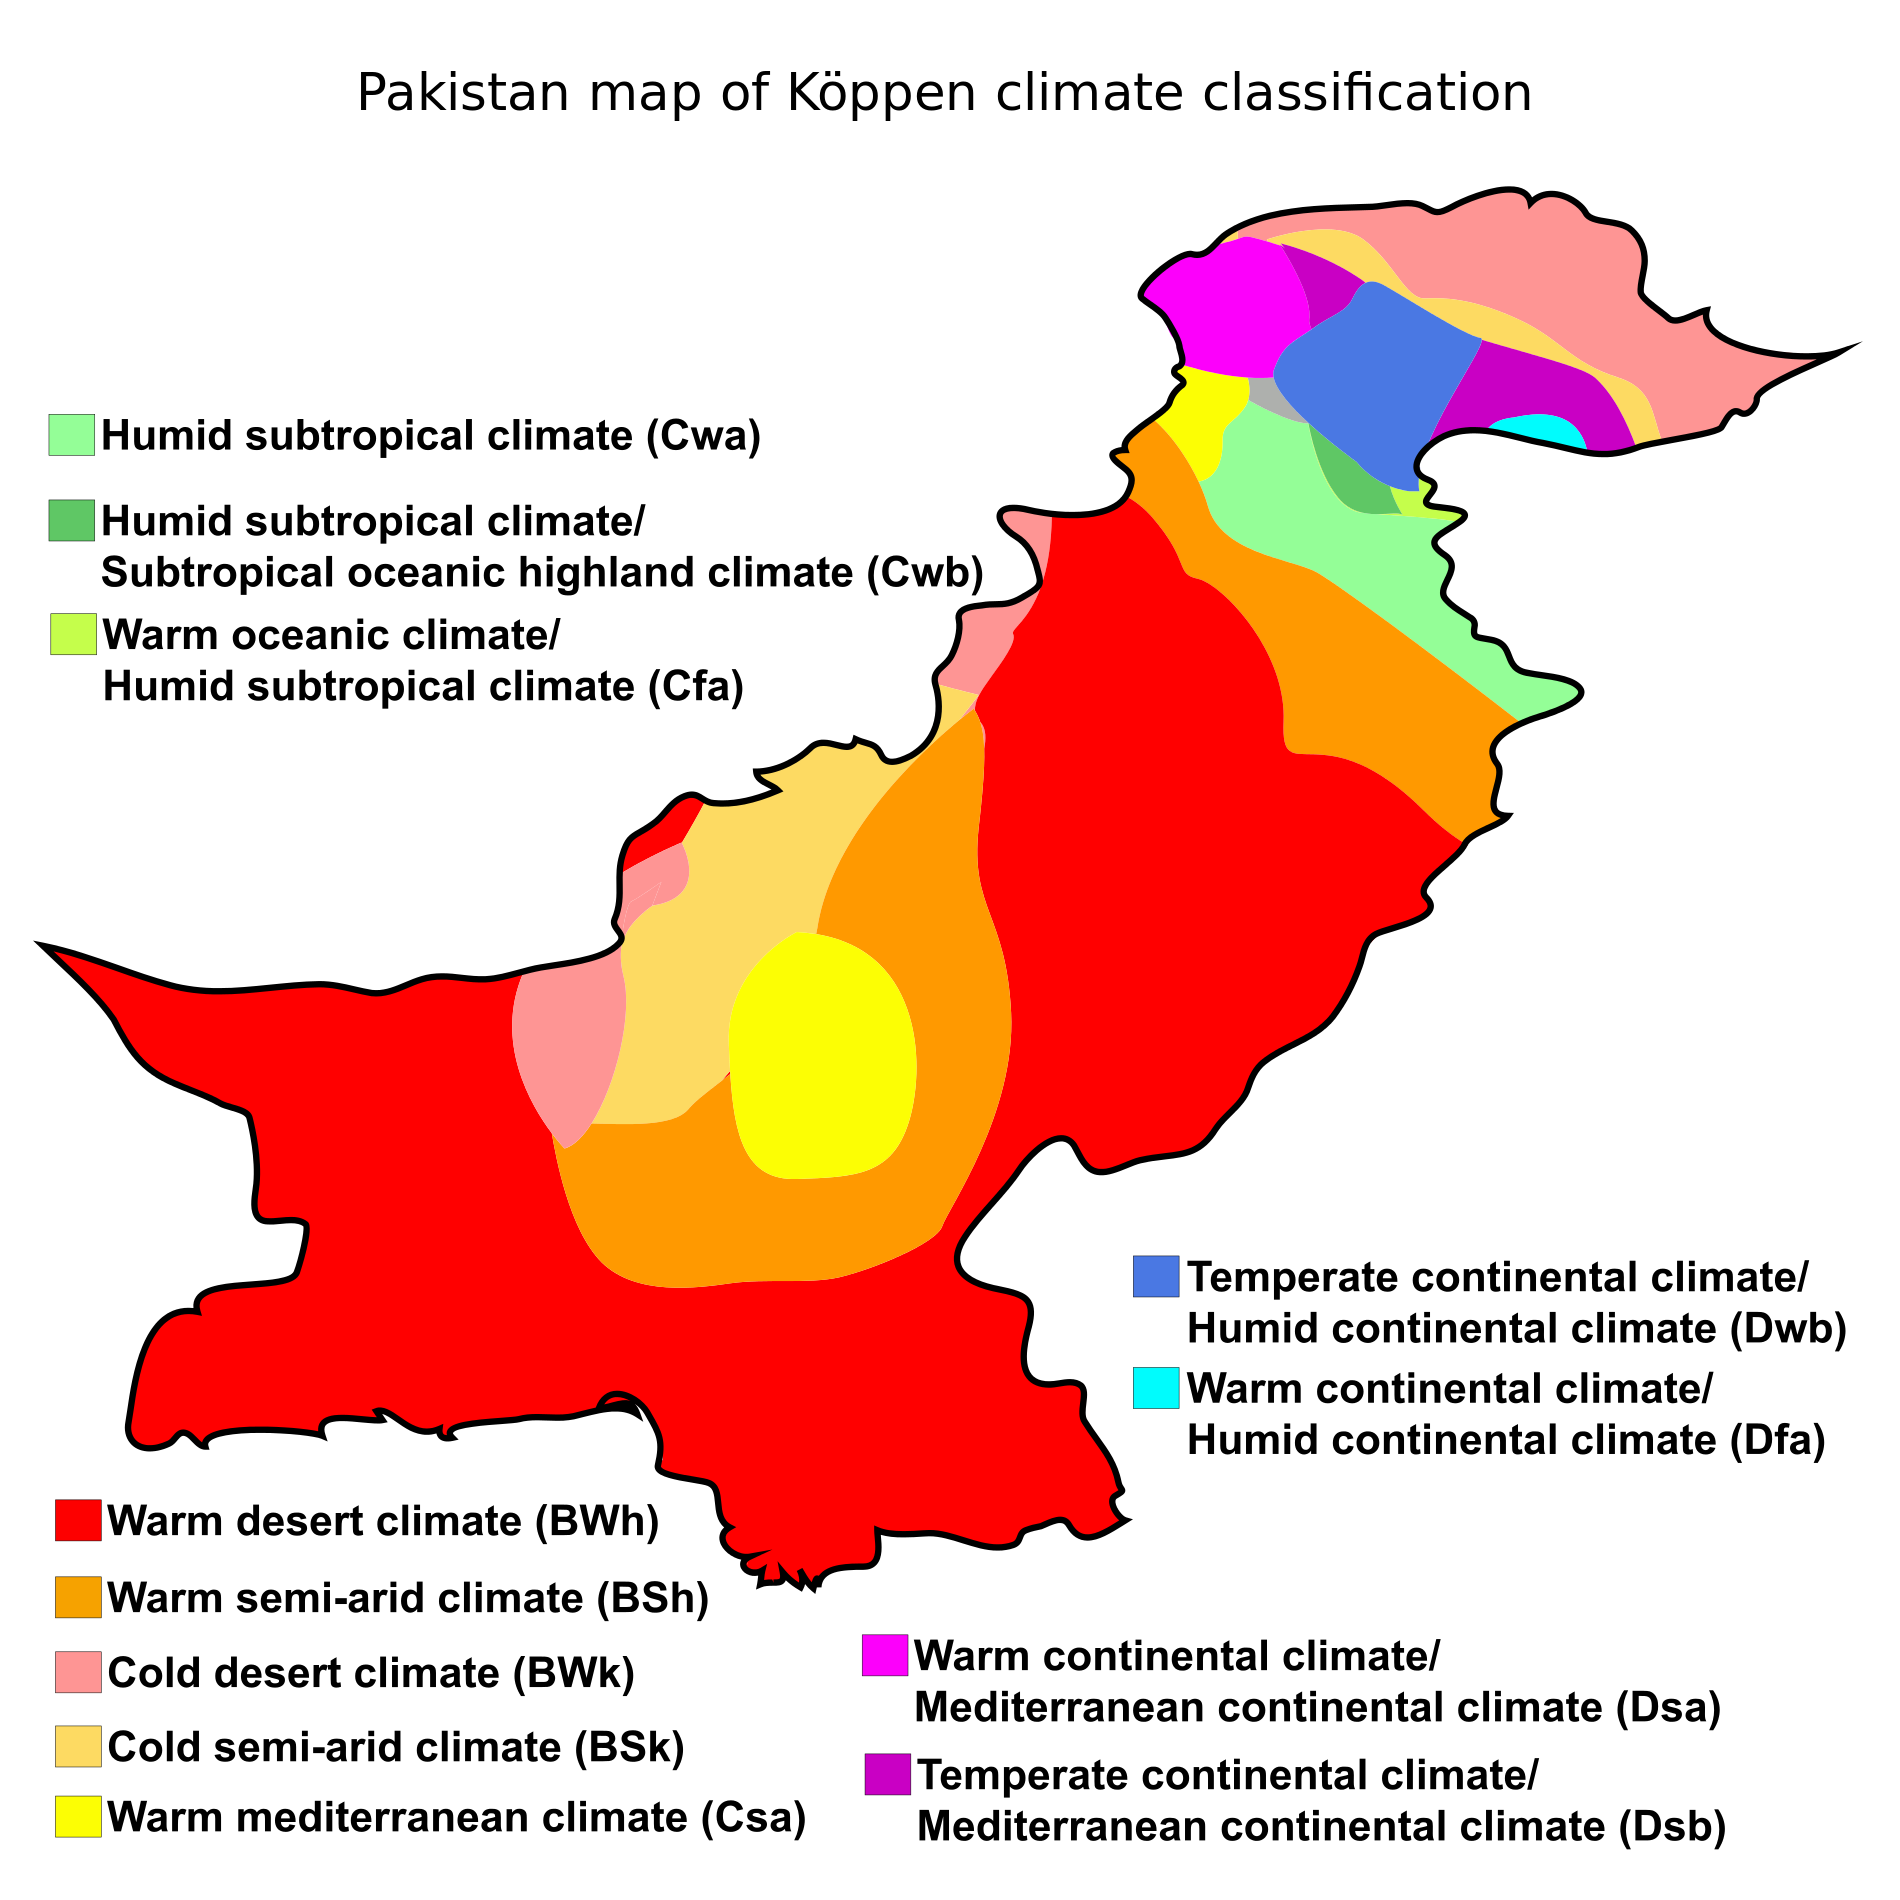 Koppen Climate Classification Of Pakistan With Images